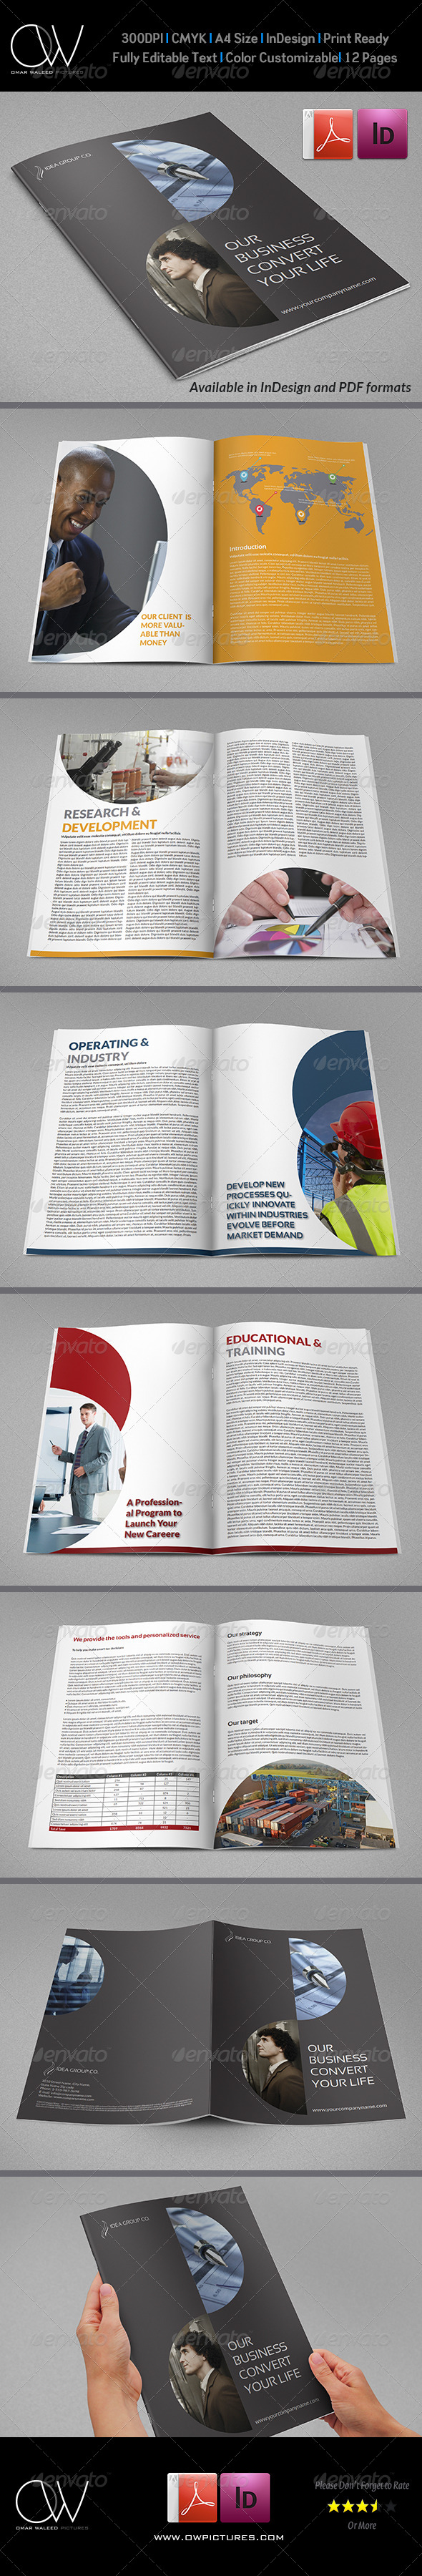 Corporate Brochure Template Vol.20 - 12 Pages - Corporate Brochures